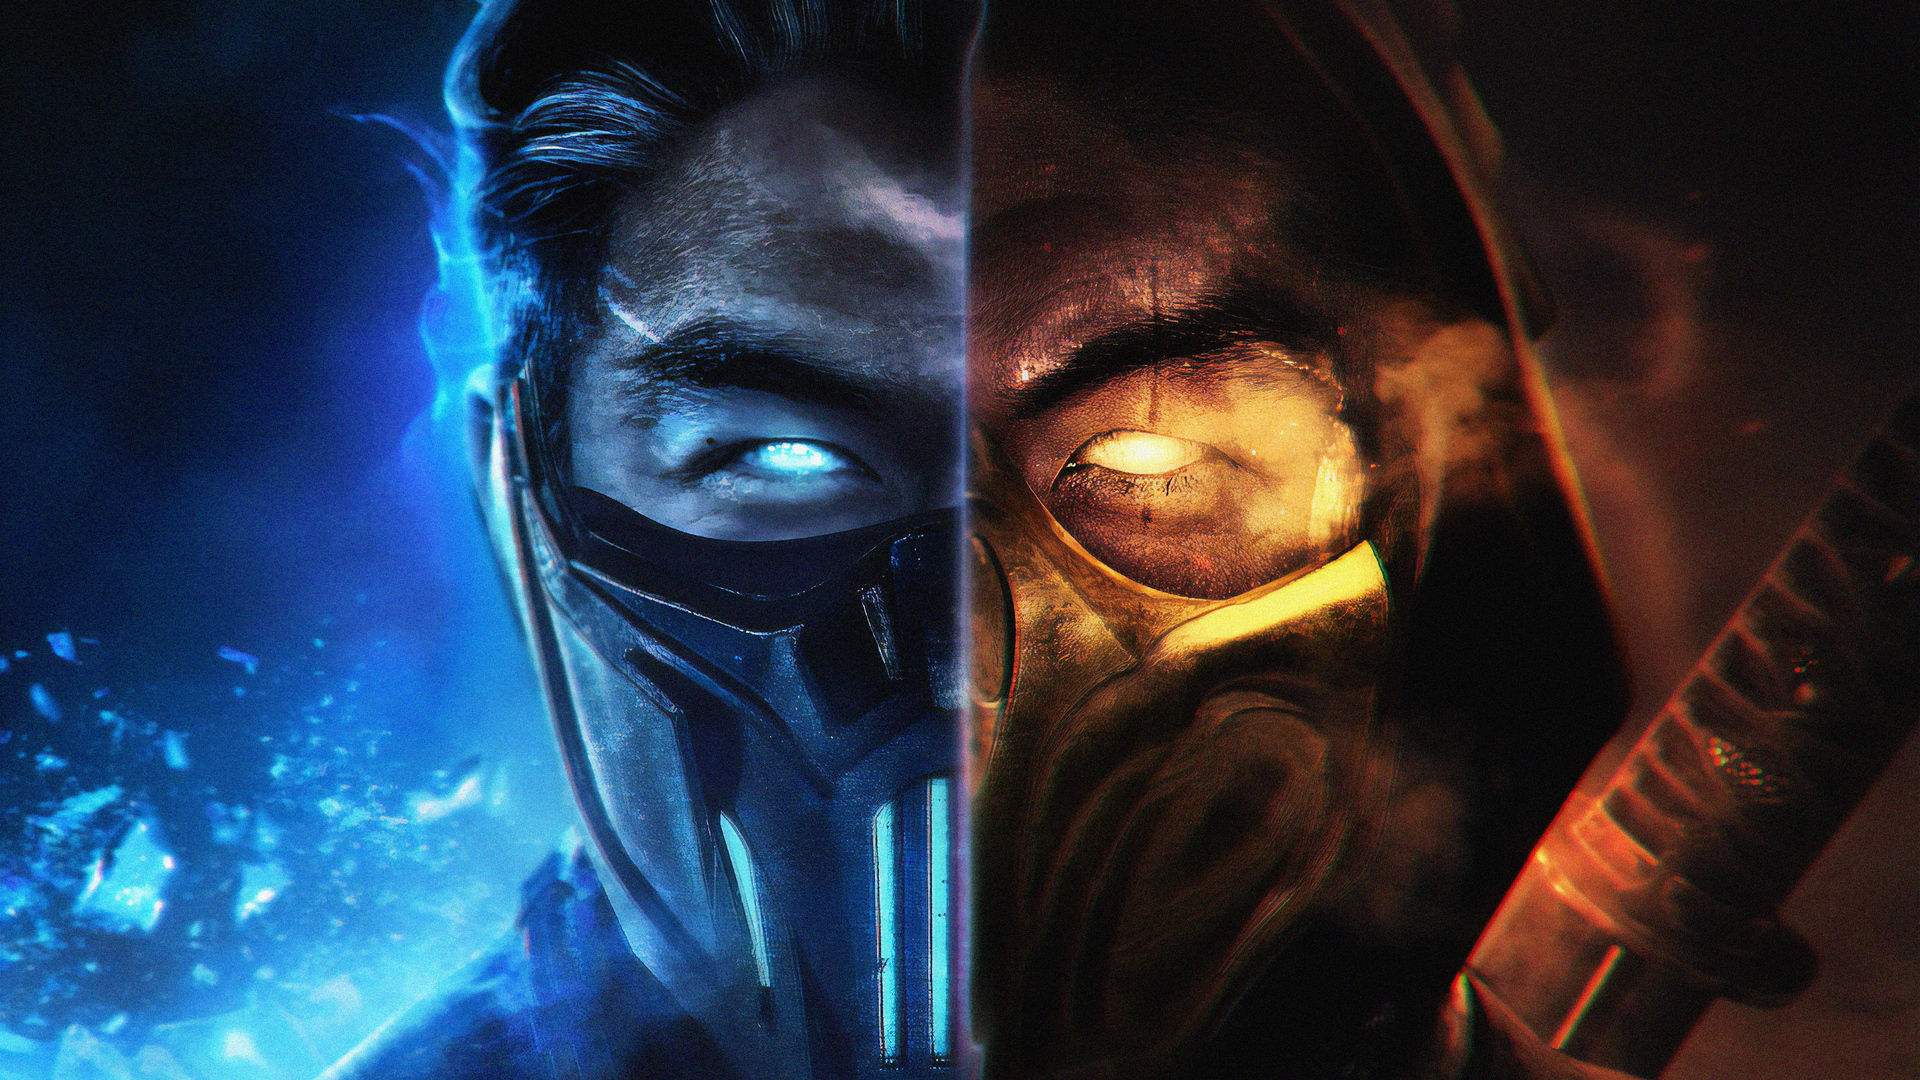 1920x1080 Mortal Kombat Subzero And Scorpion Laptop Full Hd 1080p Hd 4k Wallpapers Images Backgrounds Photos And Pictures